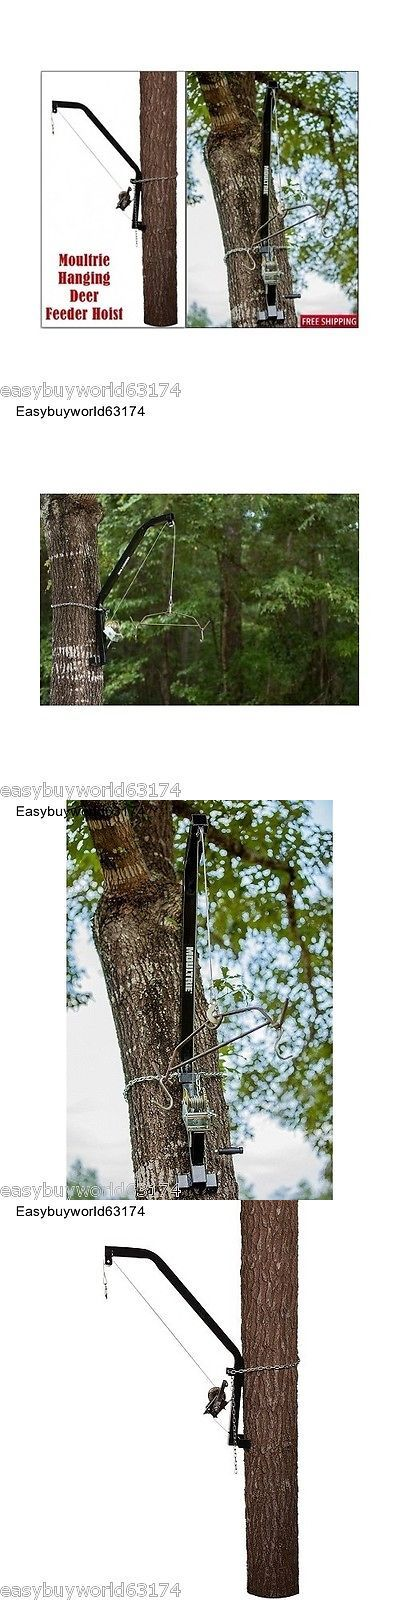 Game Feeders and Feed 52504: Moultrie Hanging Deer Feeder Hoist Heavy Loads Feeders,Big Game BUY IT NOW ONLY: $122.99